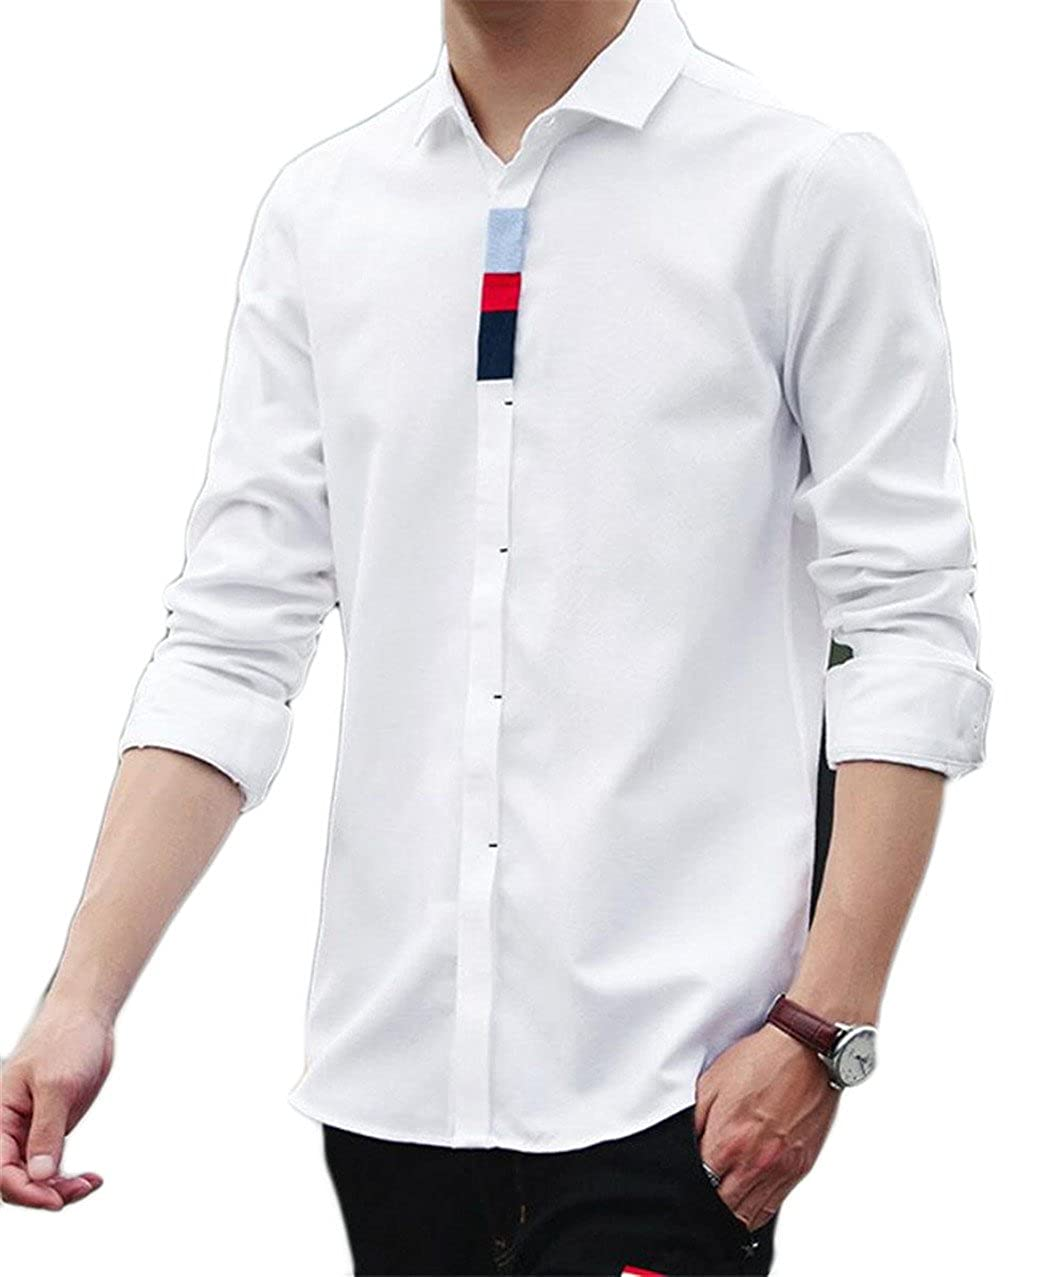 xiaohuobanMen xiaohuoban Mens Fashional Casual Button Up Shirts Long Sleeved Pure Color Baggy Dresses Shirts